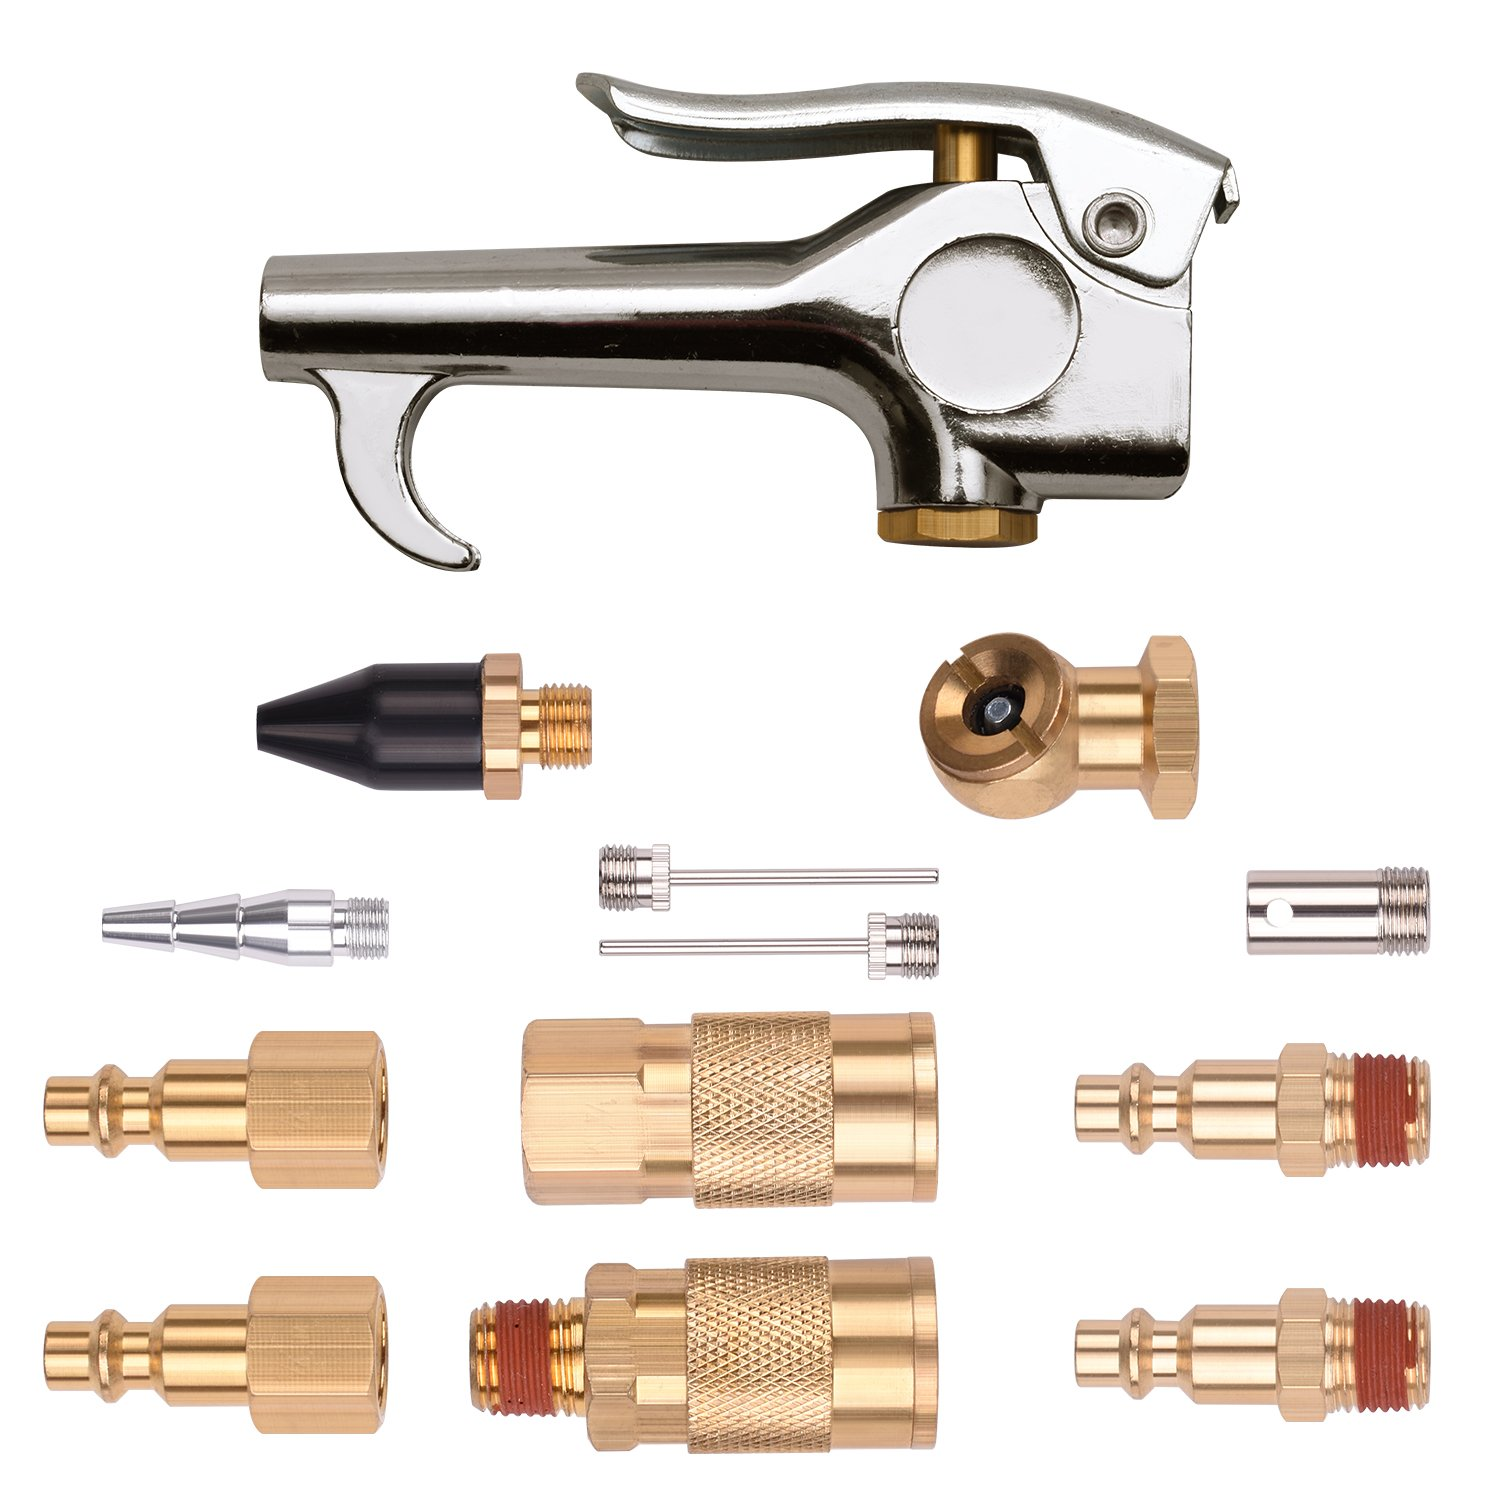 WYNNsky 1/4'' NPT Air Blow Gun and Brass Air Accessory Kit, Air Compressor Connect Coupler/Plug - 13 Piece Air Tools Kit